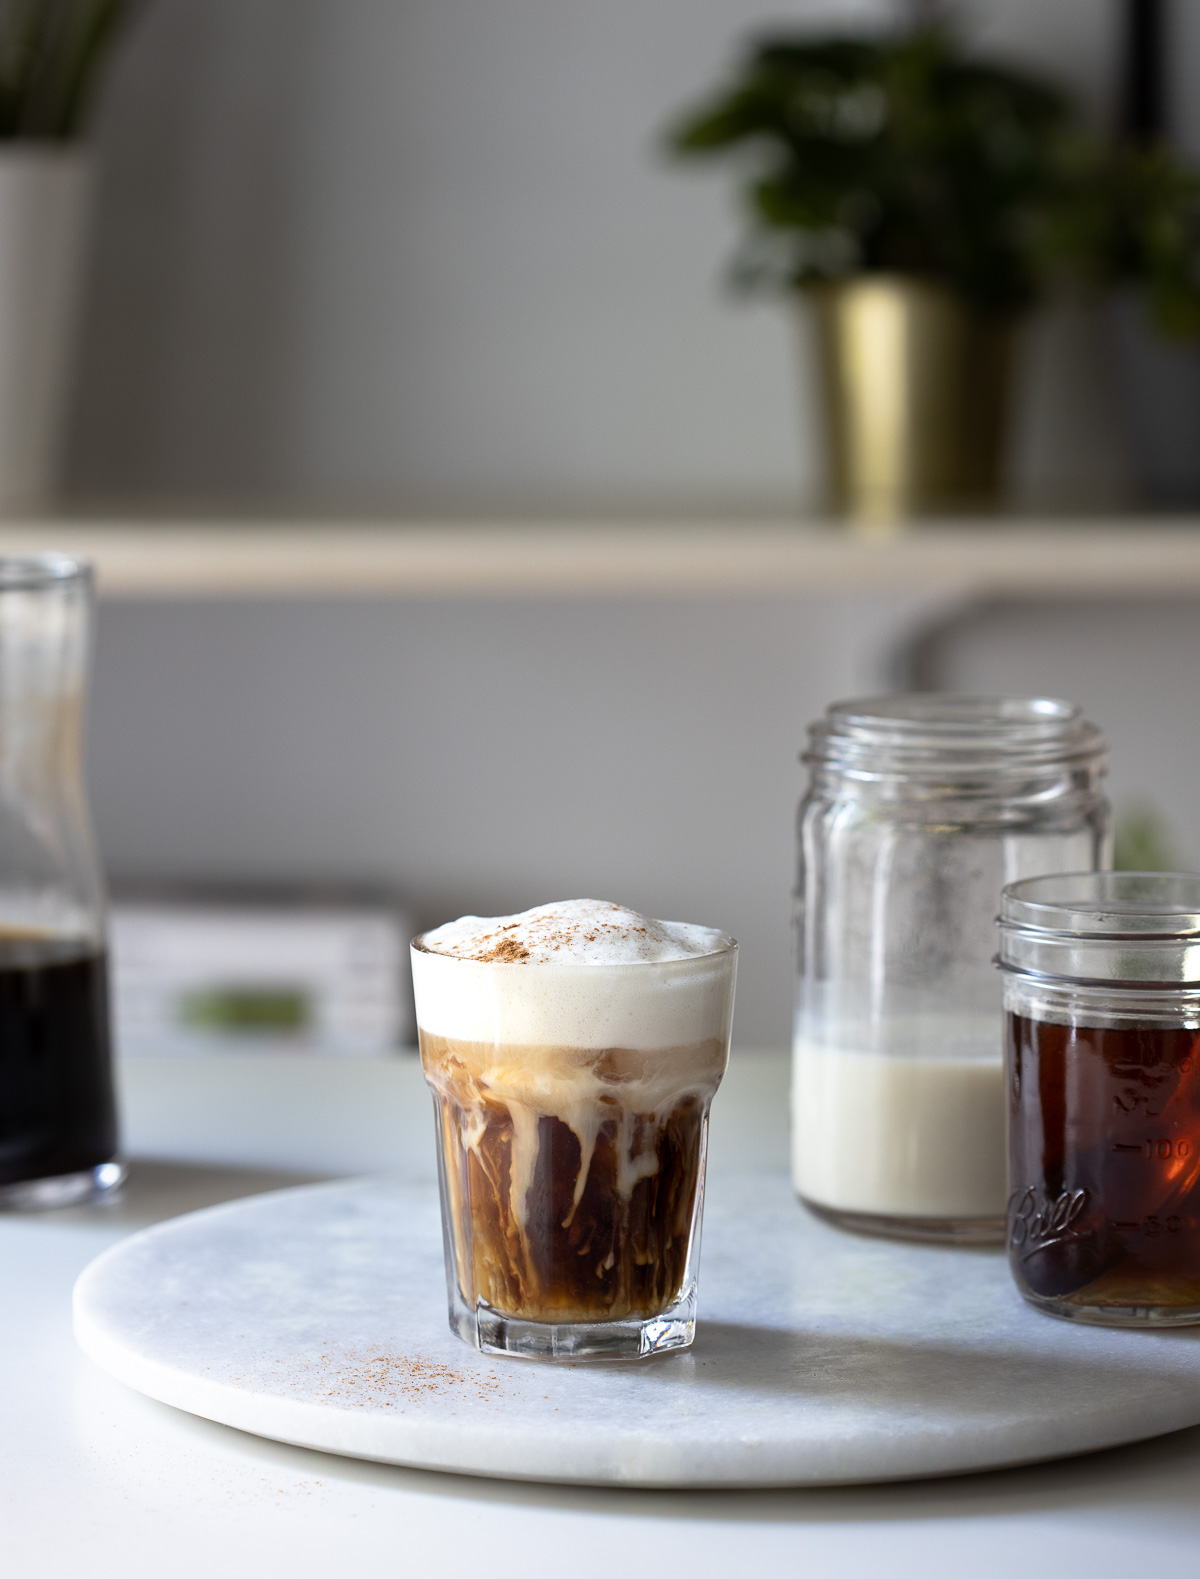 A frothy coffee drink on a round marble board with jars of ingredients nearby.